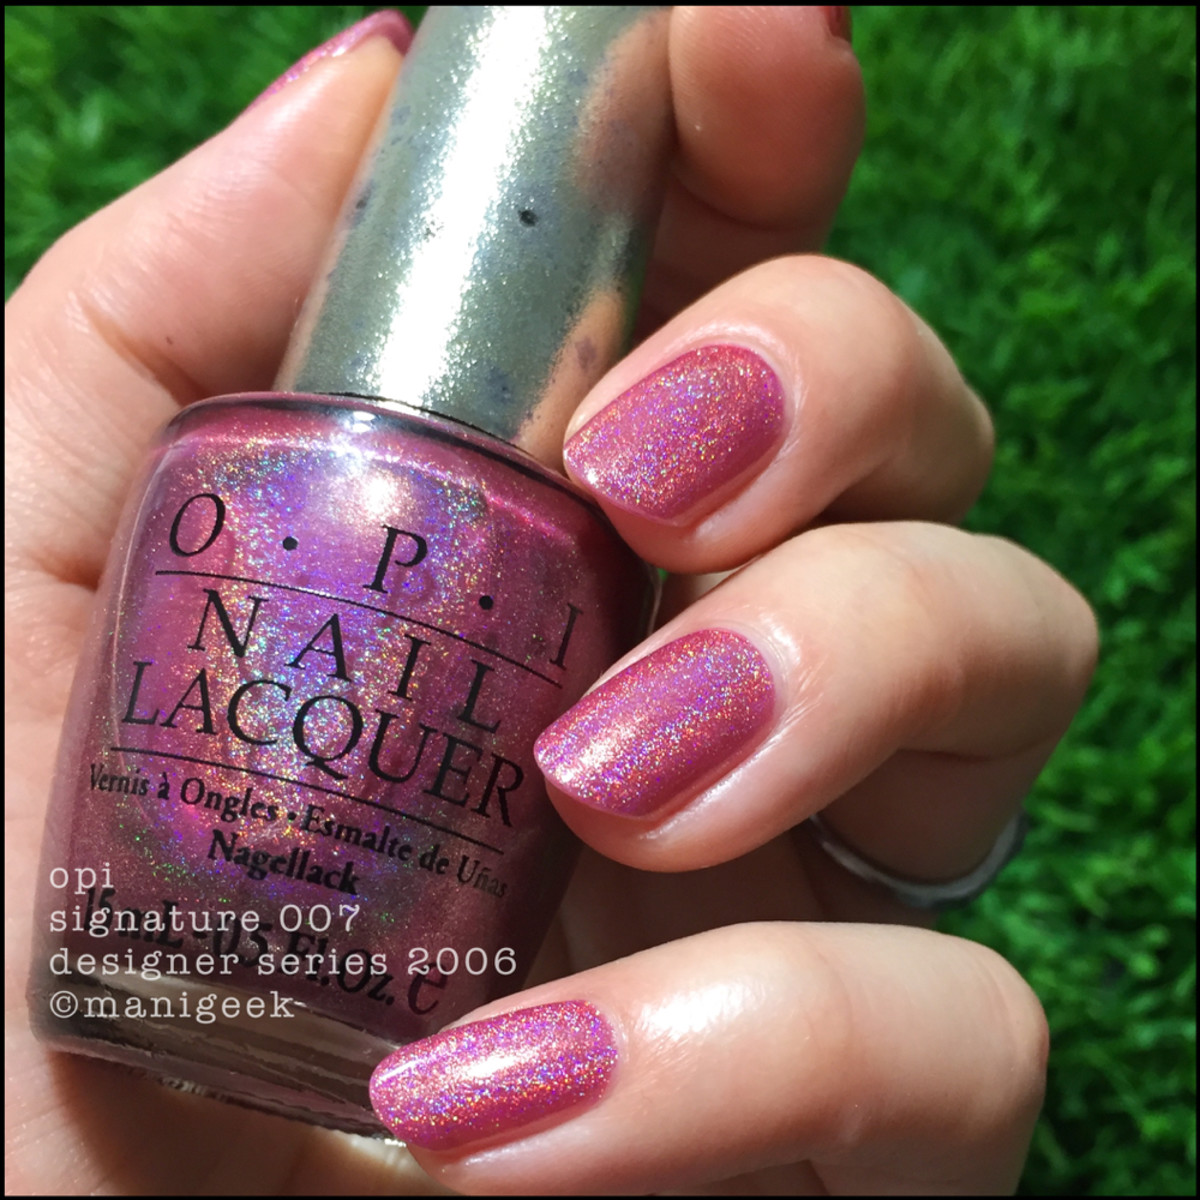 OPI DS Signature 007 outside _ Manigeek 1000 Days of Untrieds